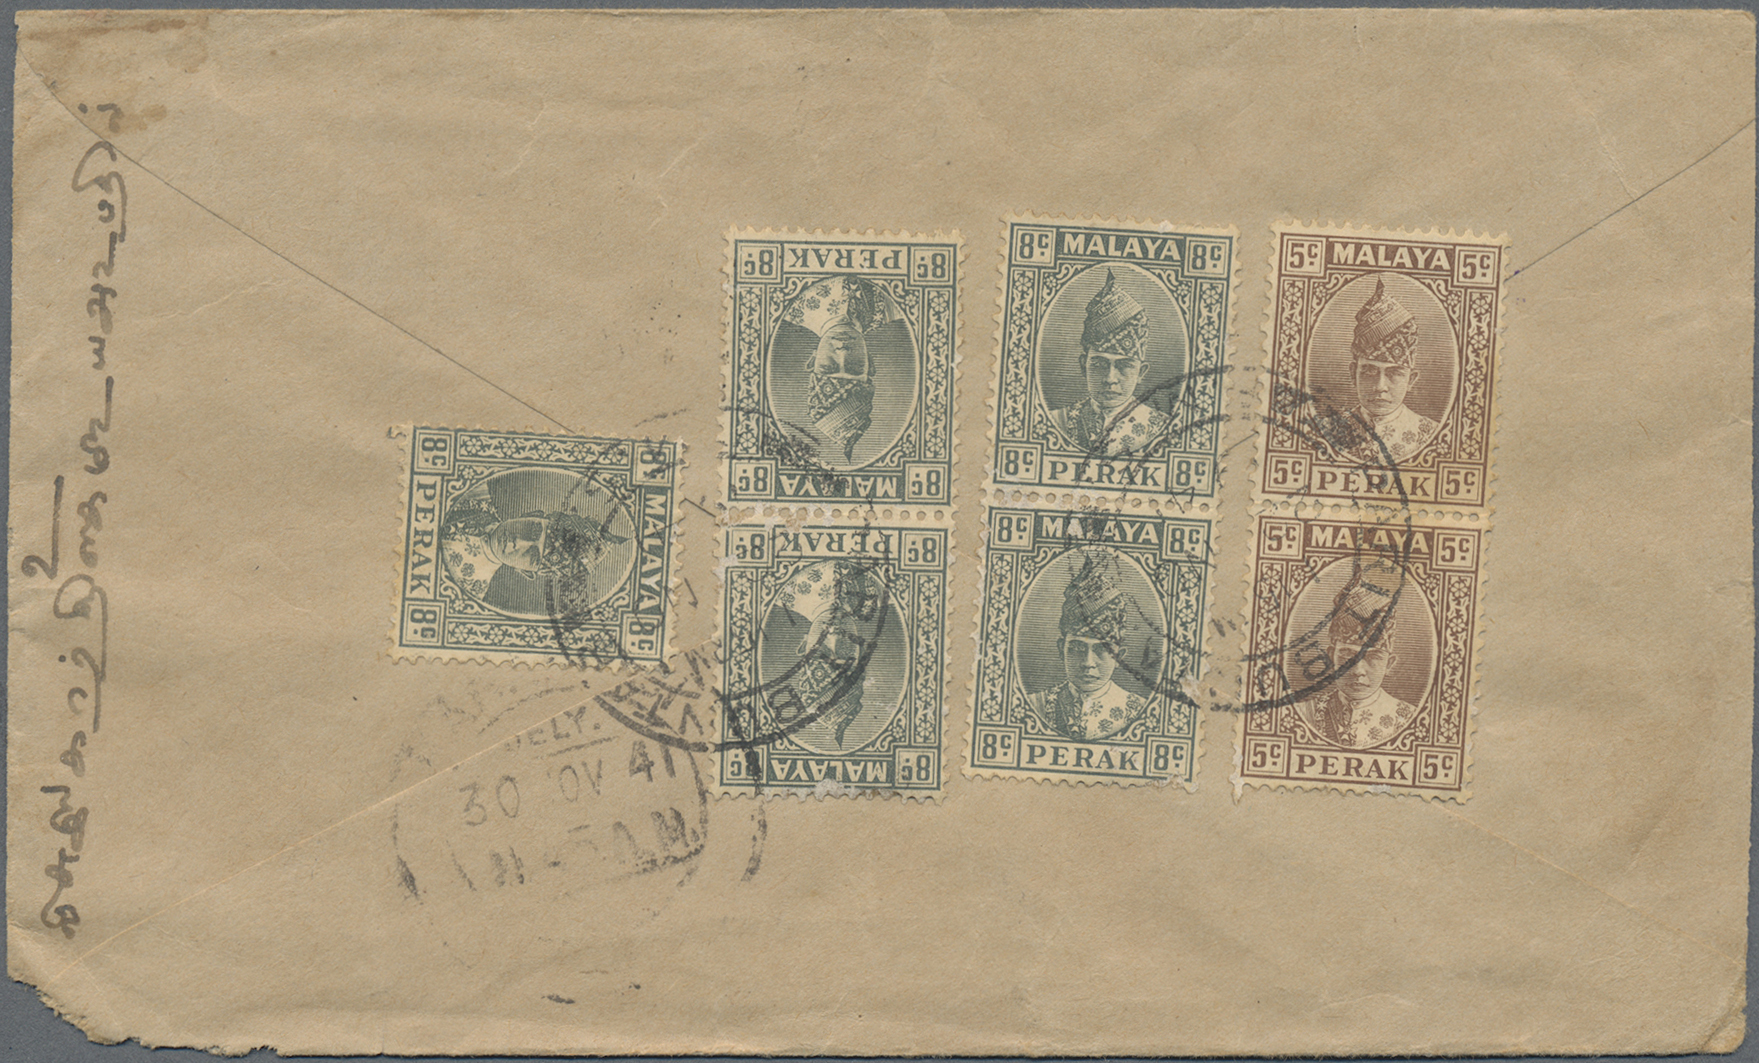 Lot 14016 - Malaiische Staaten - Perak  -  Auktionshaus Christoph Gärtner GmbH & Co. KG Sale #48 collections Overseas  Airmail / Ship mail & Thematics